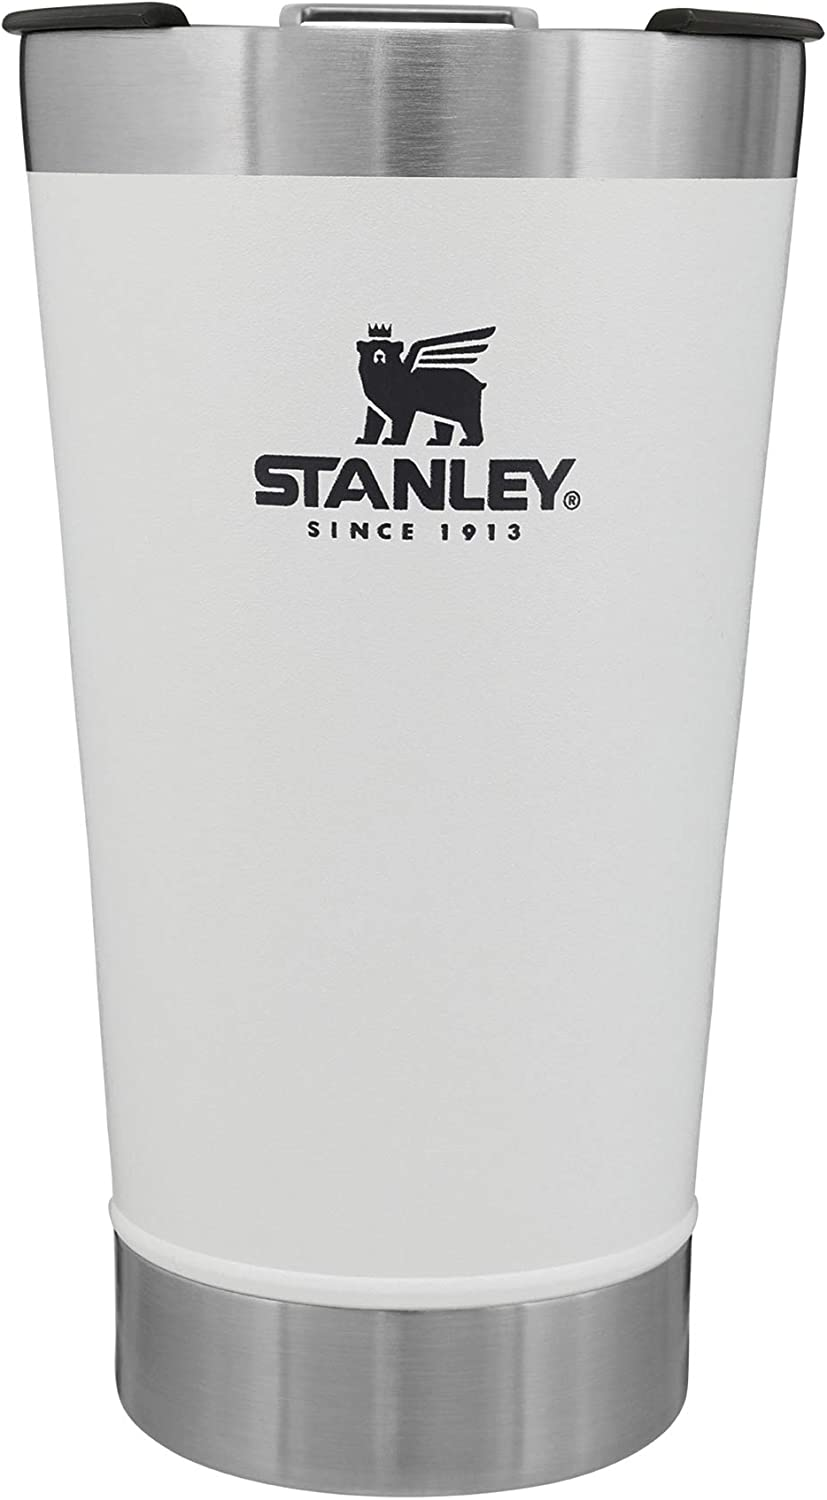 Stanley Classic Stay Chill Vacuum Insulated Pint Glass Tumbler, 16oz Stainless Steel Beer Mug with Built-in Bottle Opener, Double Wall Rugged Metal Drinking Glass, Dishwasher Safe Insulated Cup